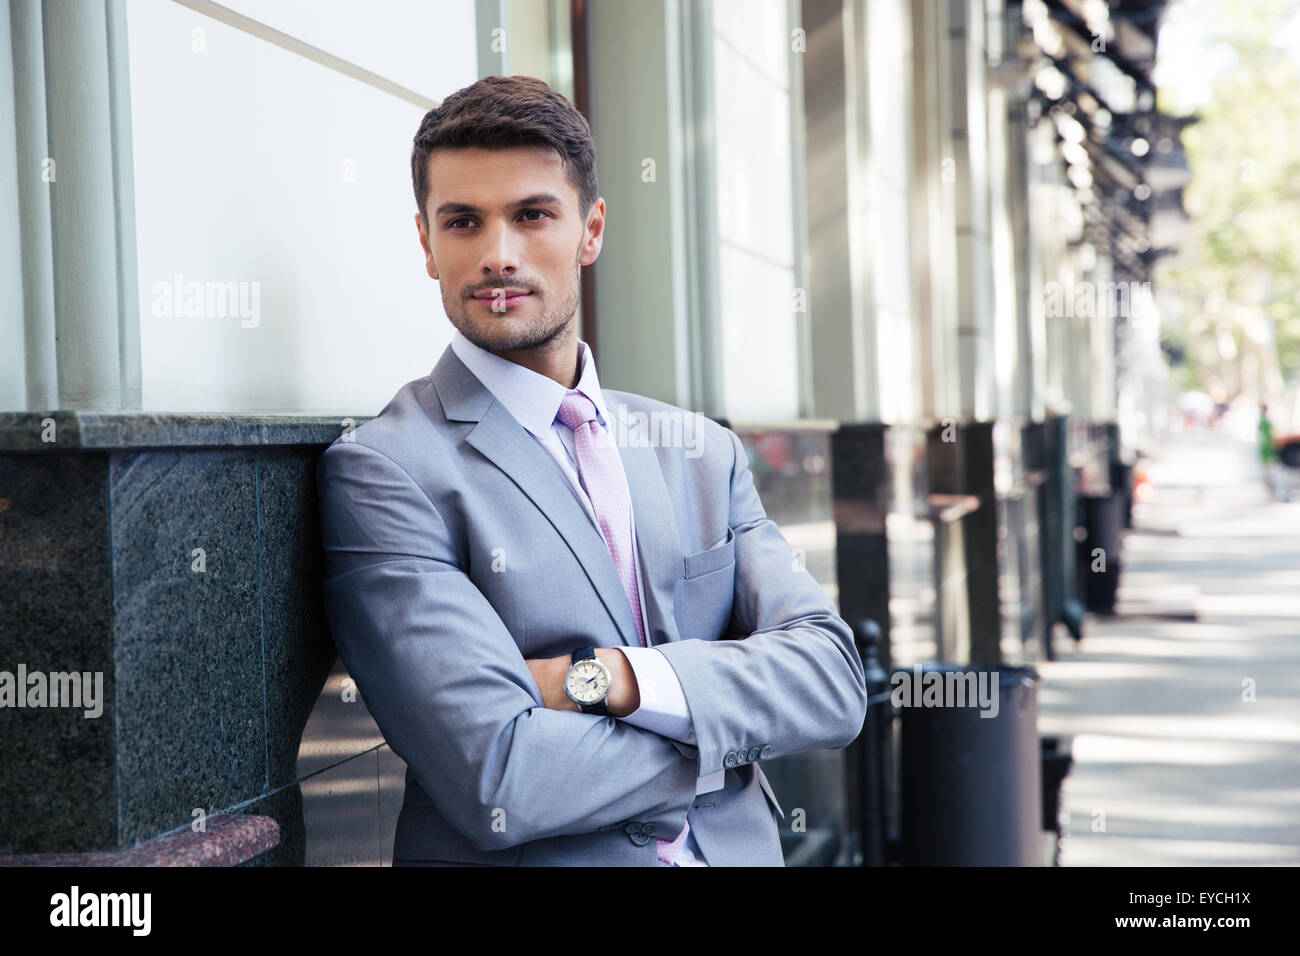 Portrait of a handsome businessman with arms folded standing outdoors in the city - Stock Image